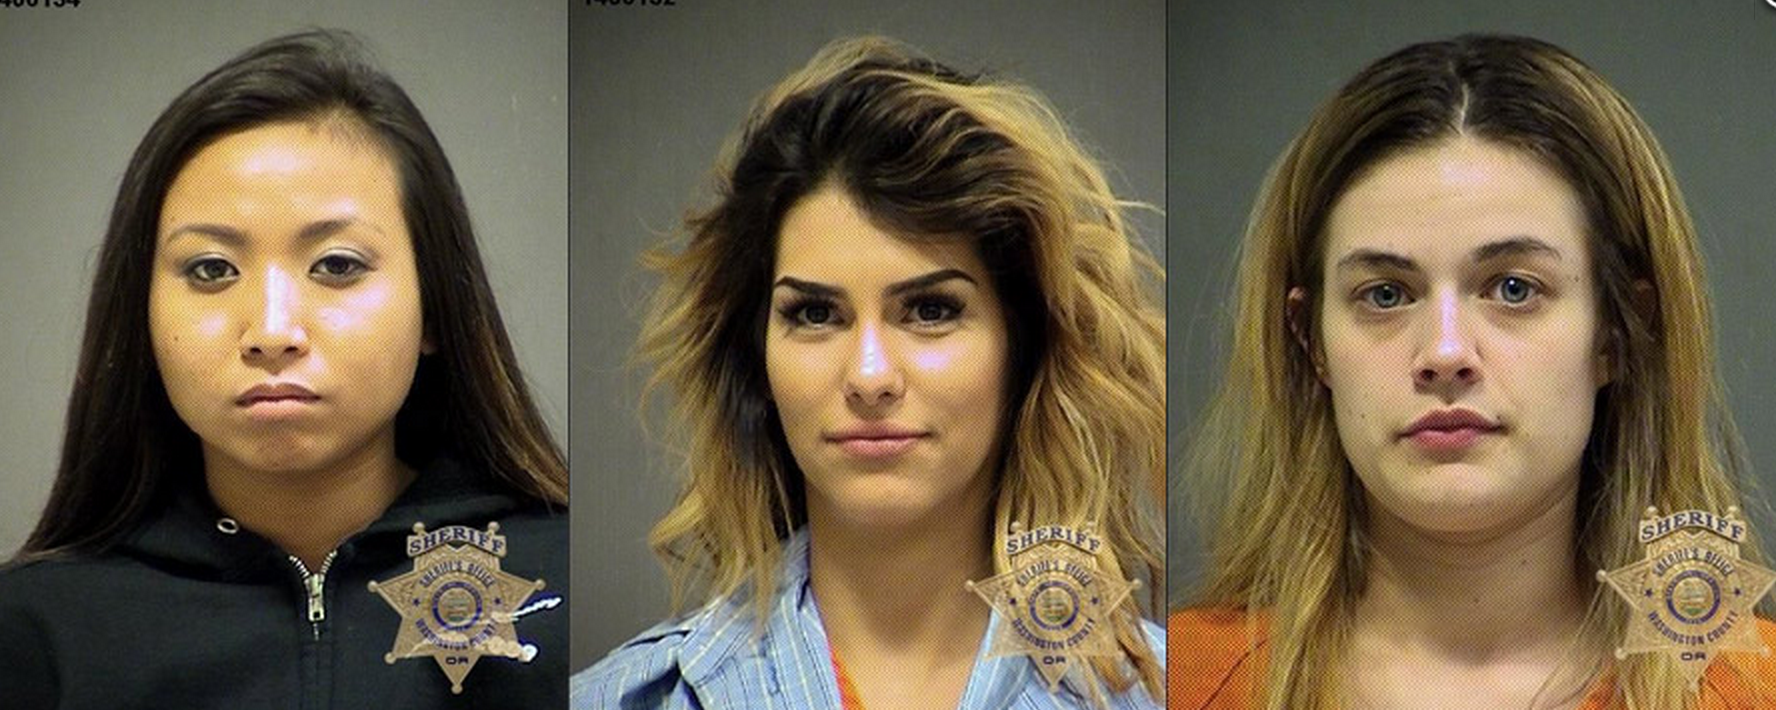 3 women arrested for twerking outside city hall and charged with drug possession.